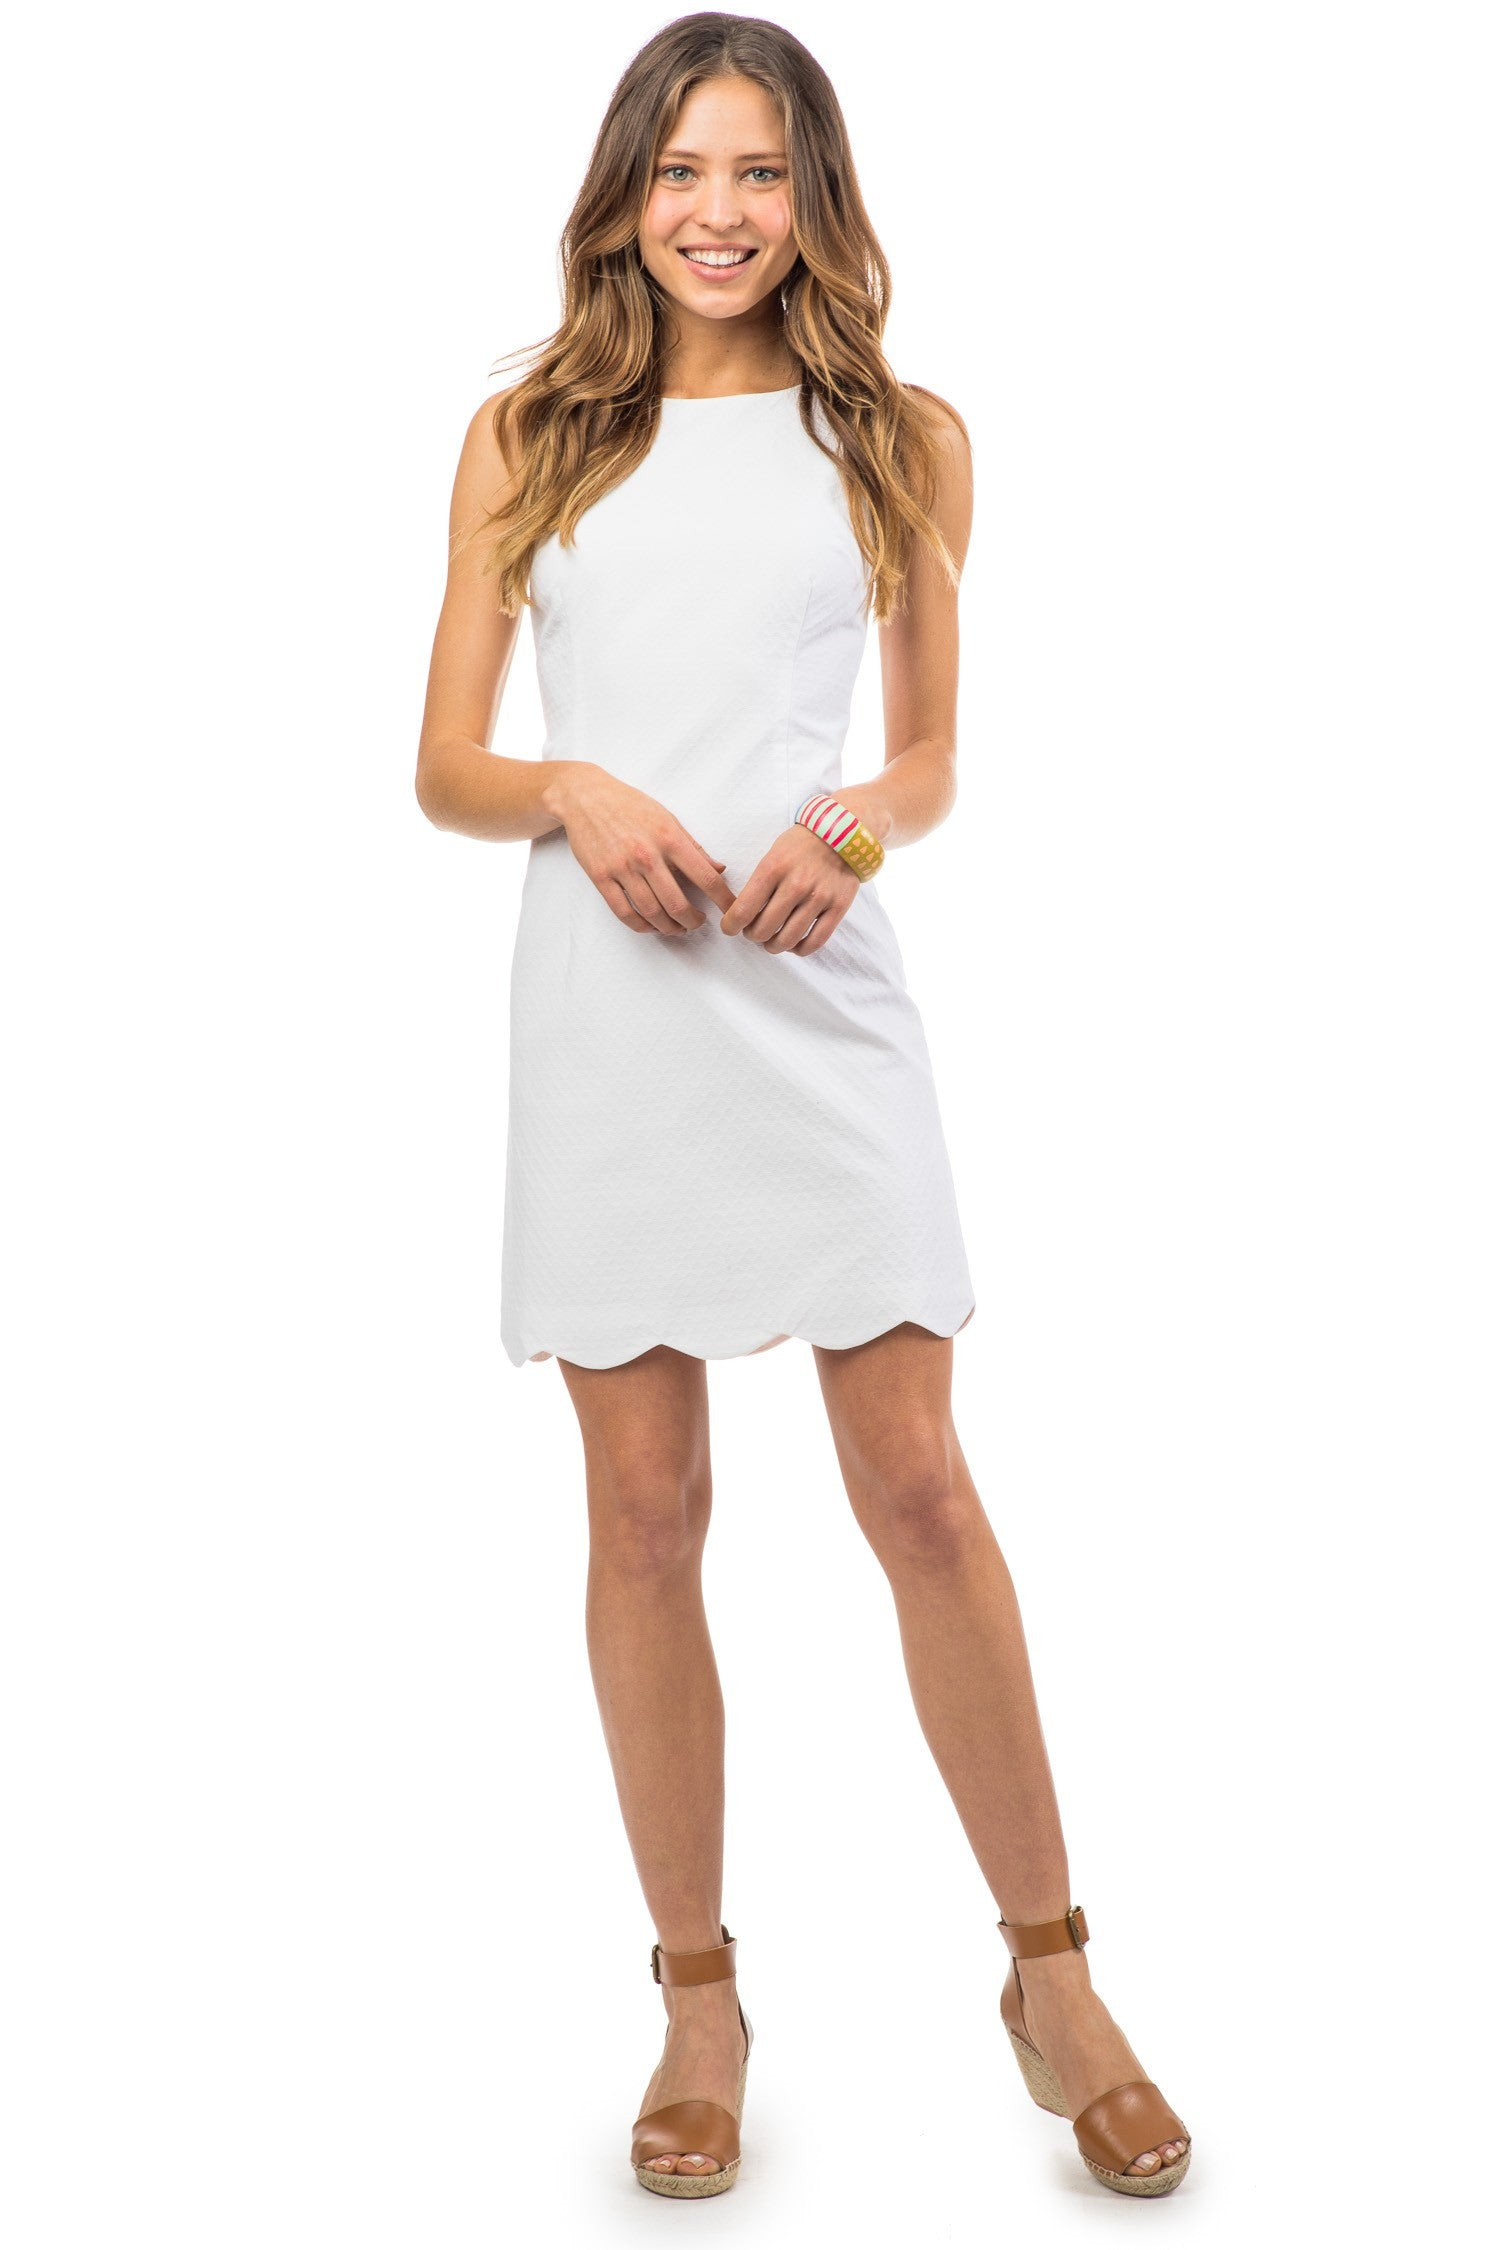 Southern Tide Charleston Wavy Scallop Dress - Classic White Front View